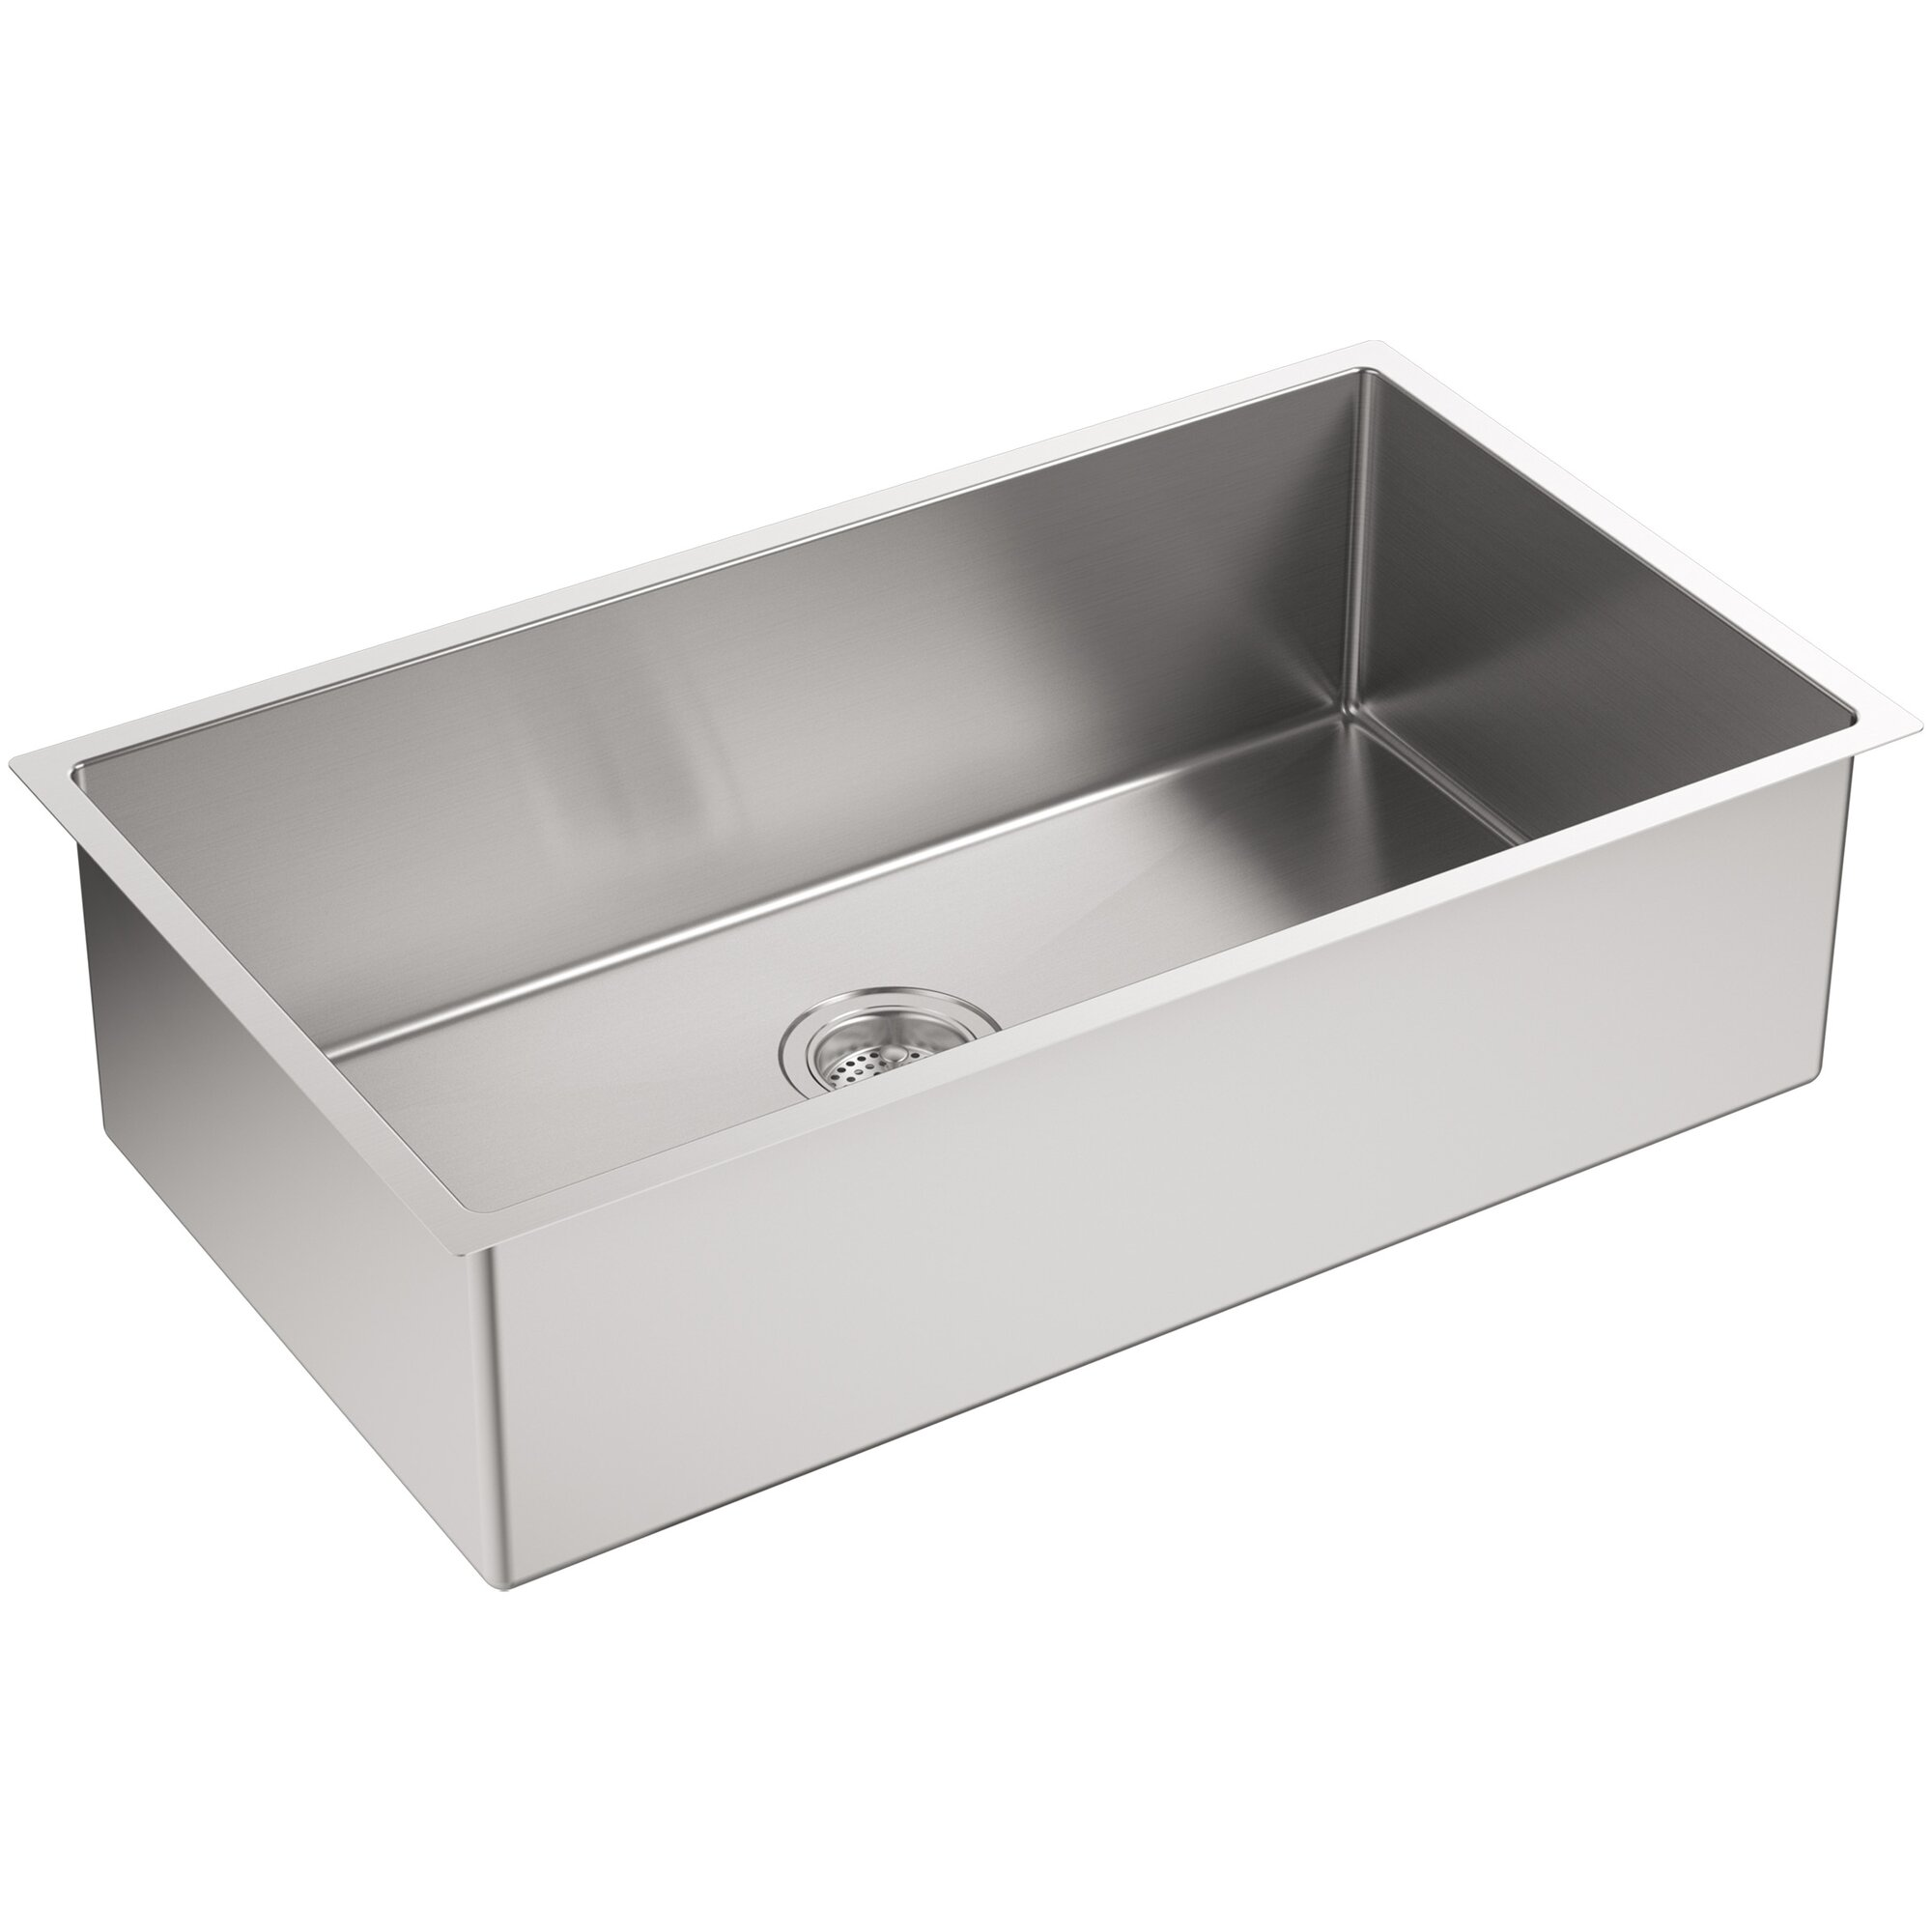 strive 32 x 1825 undermount single bowl kitchen sink with - Bowl Kitchen Sink